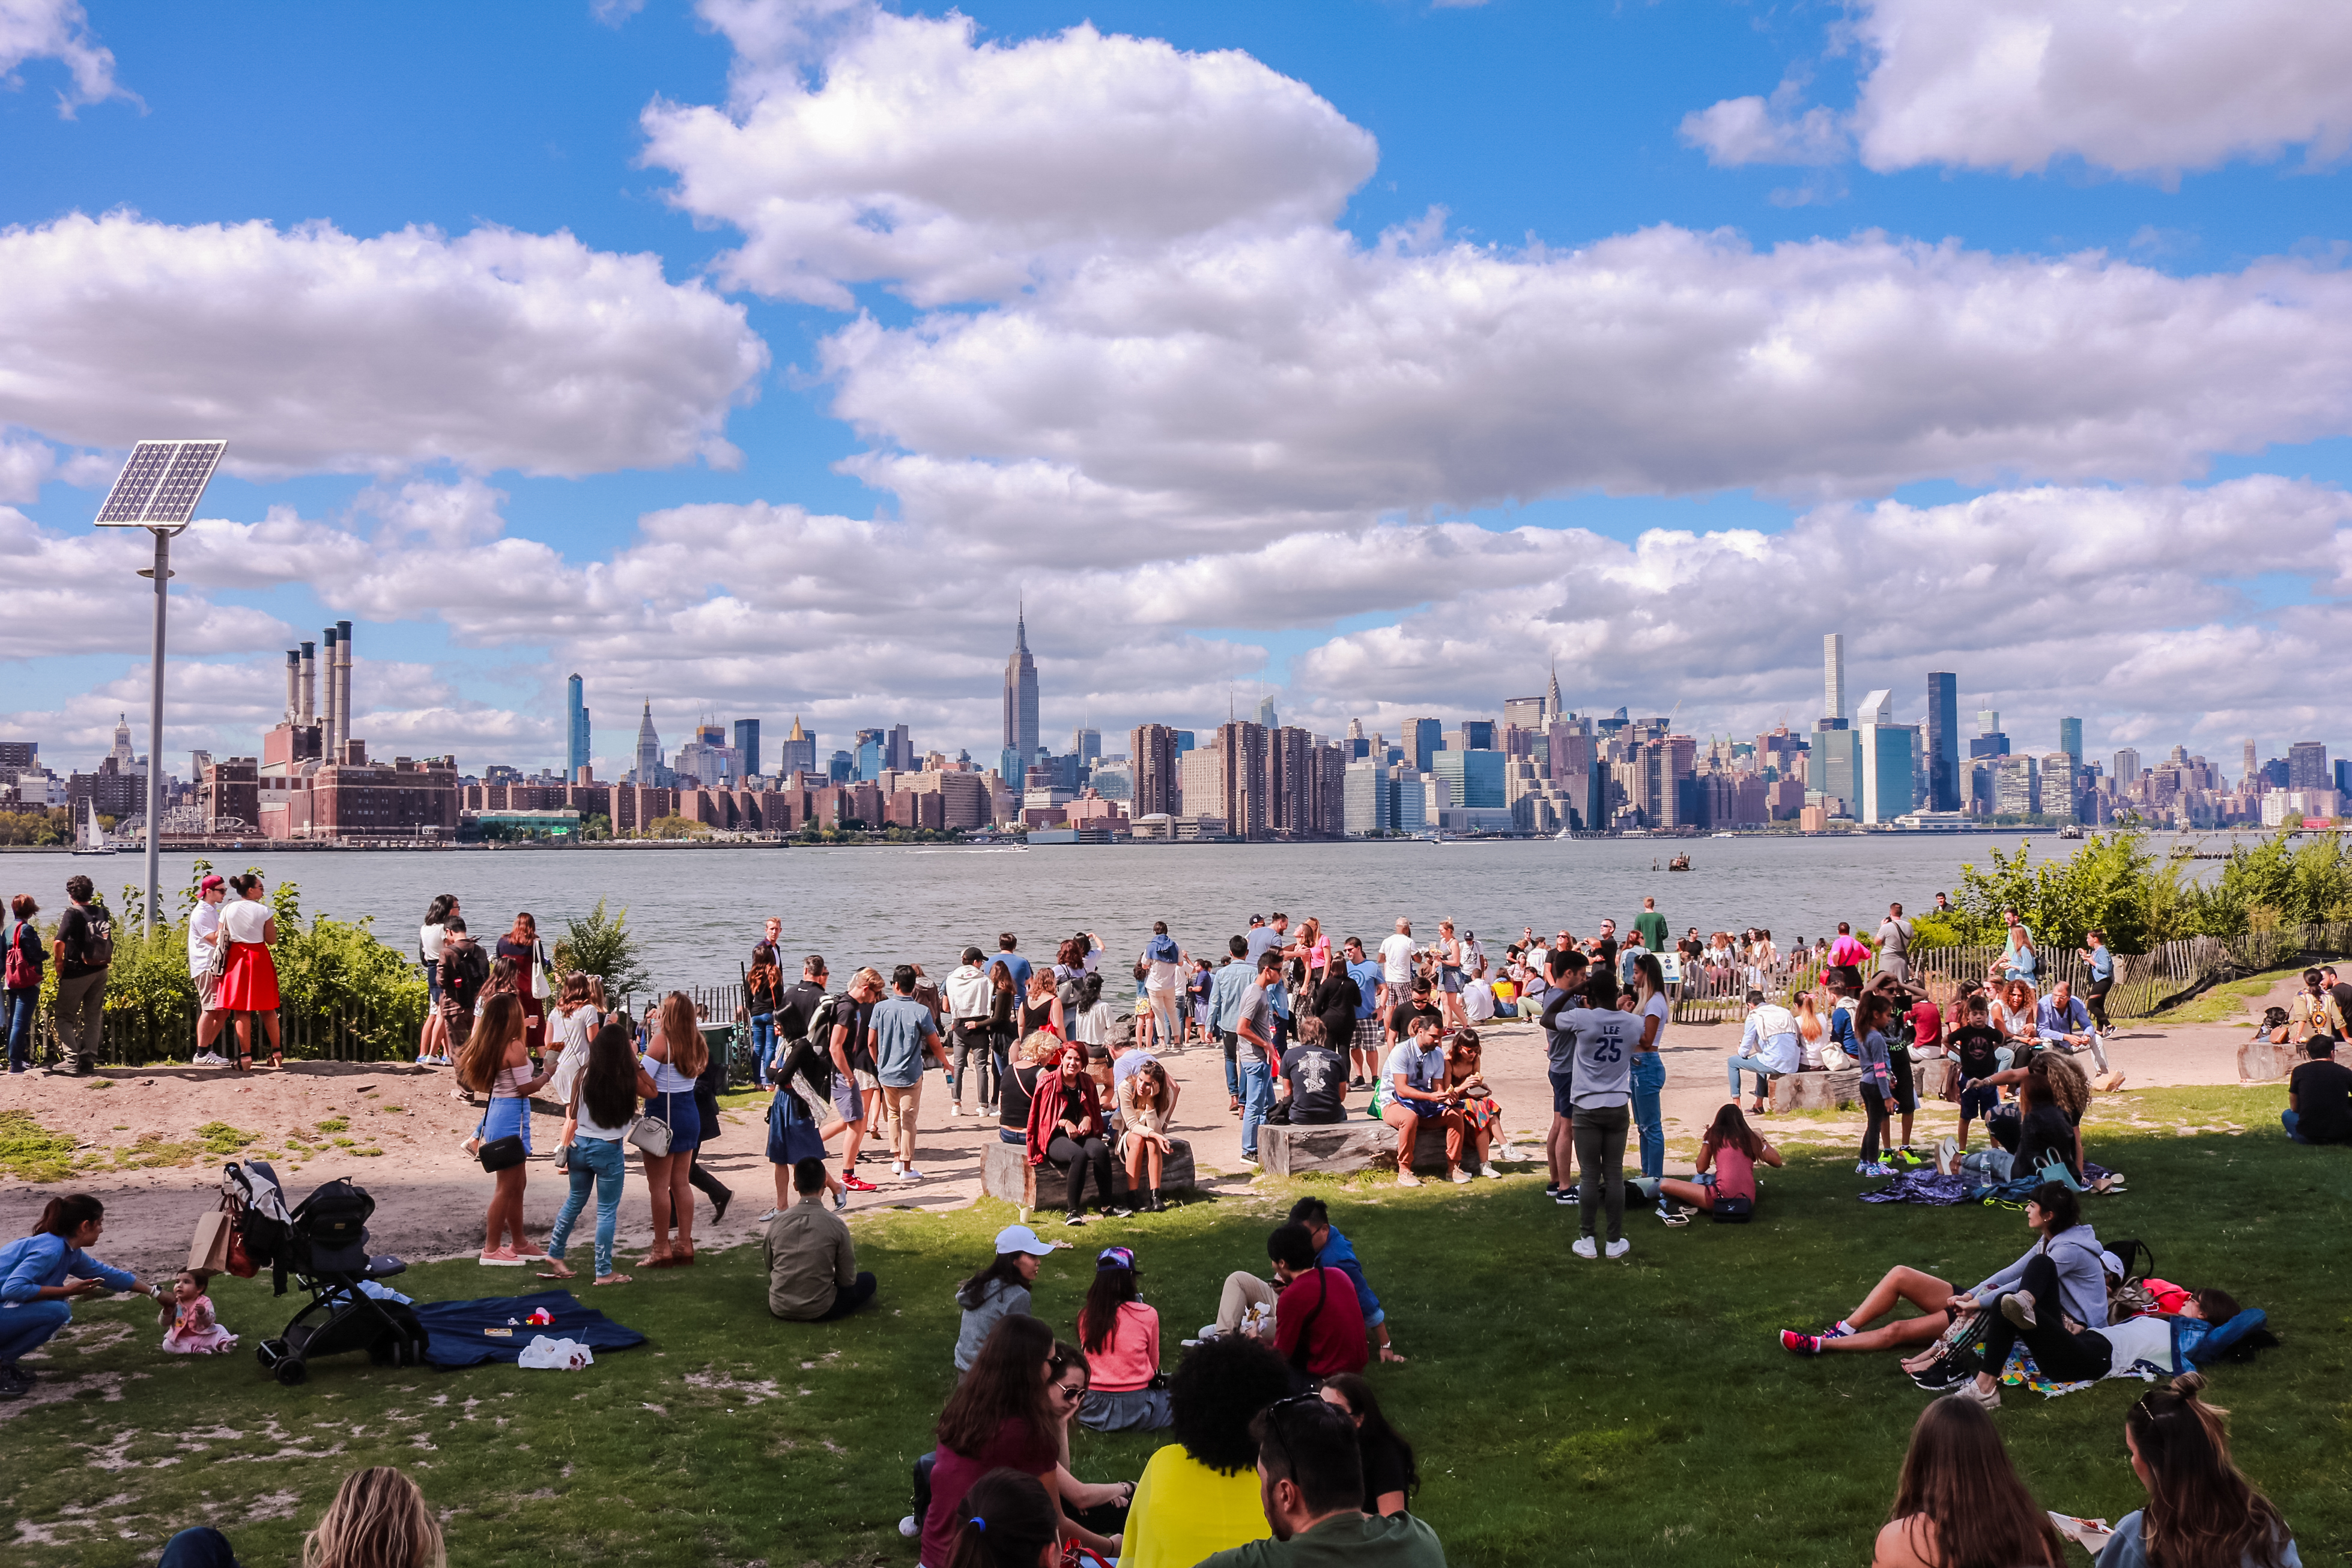 A group of people sitting on a green lawn looking at the Manhattan skyline and the East River in front of them